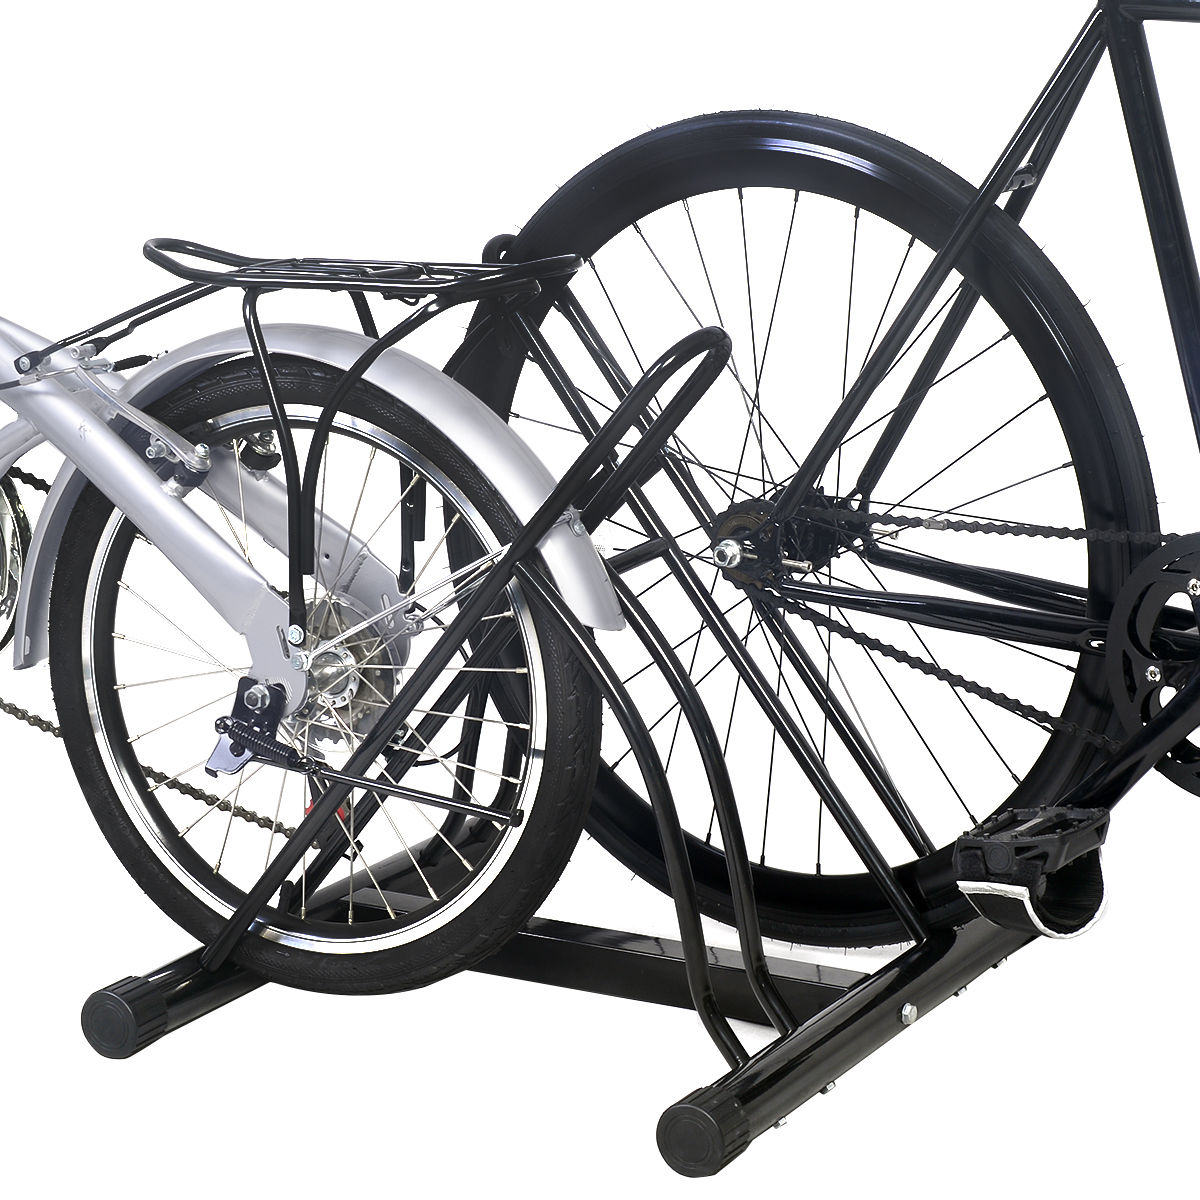 """Details about  /Garage Floor Storage Organizer Cycling Rack Two Bicycle Bike Stand Max Tire 2.5/"""""""